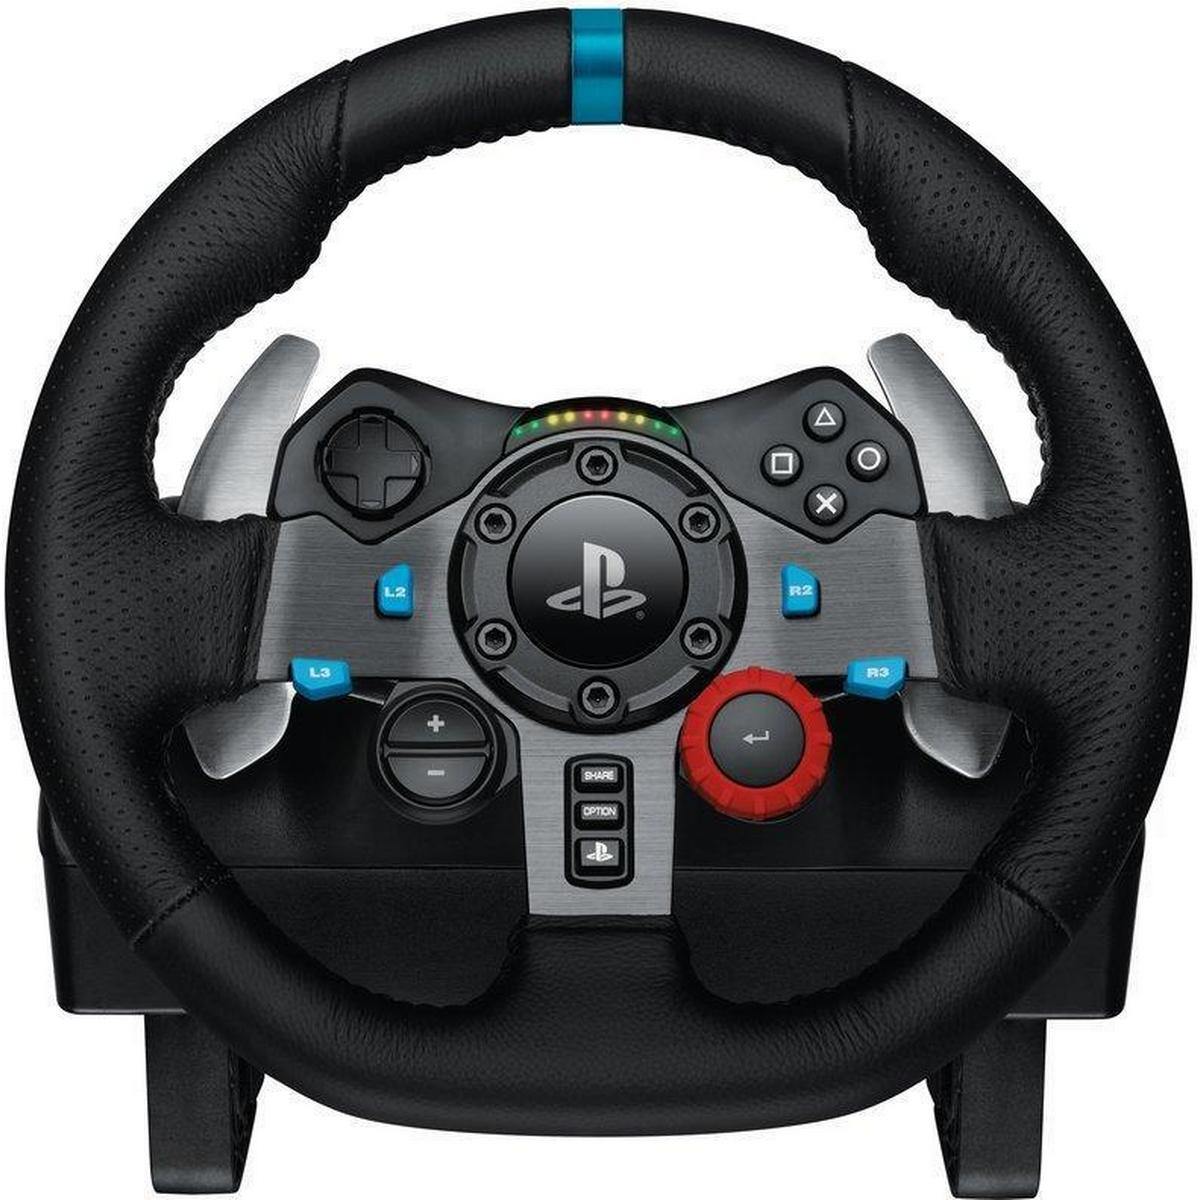 Compare best Pedals Game Controllers prices on the market - PriceRunner